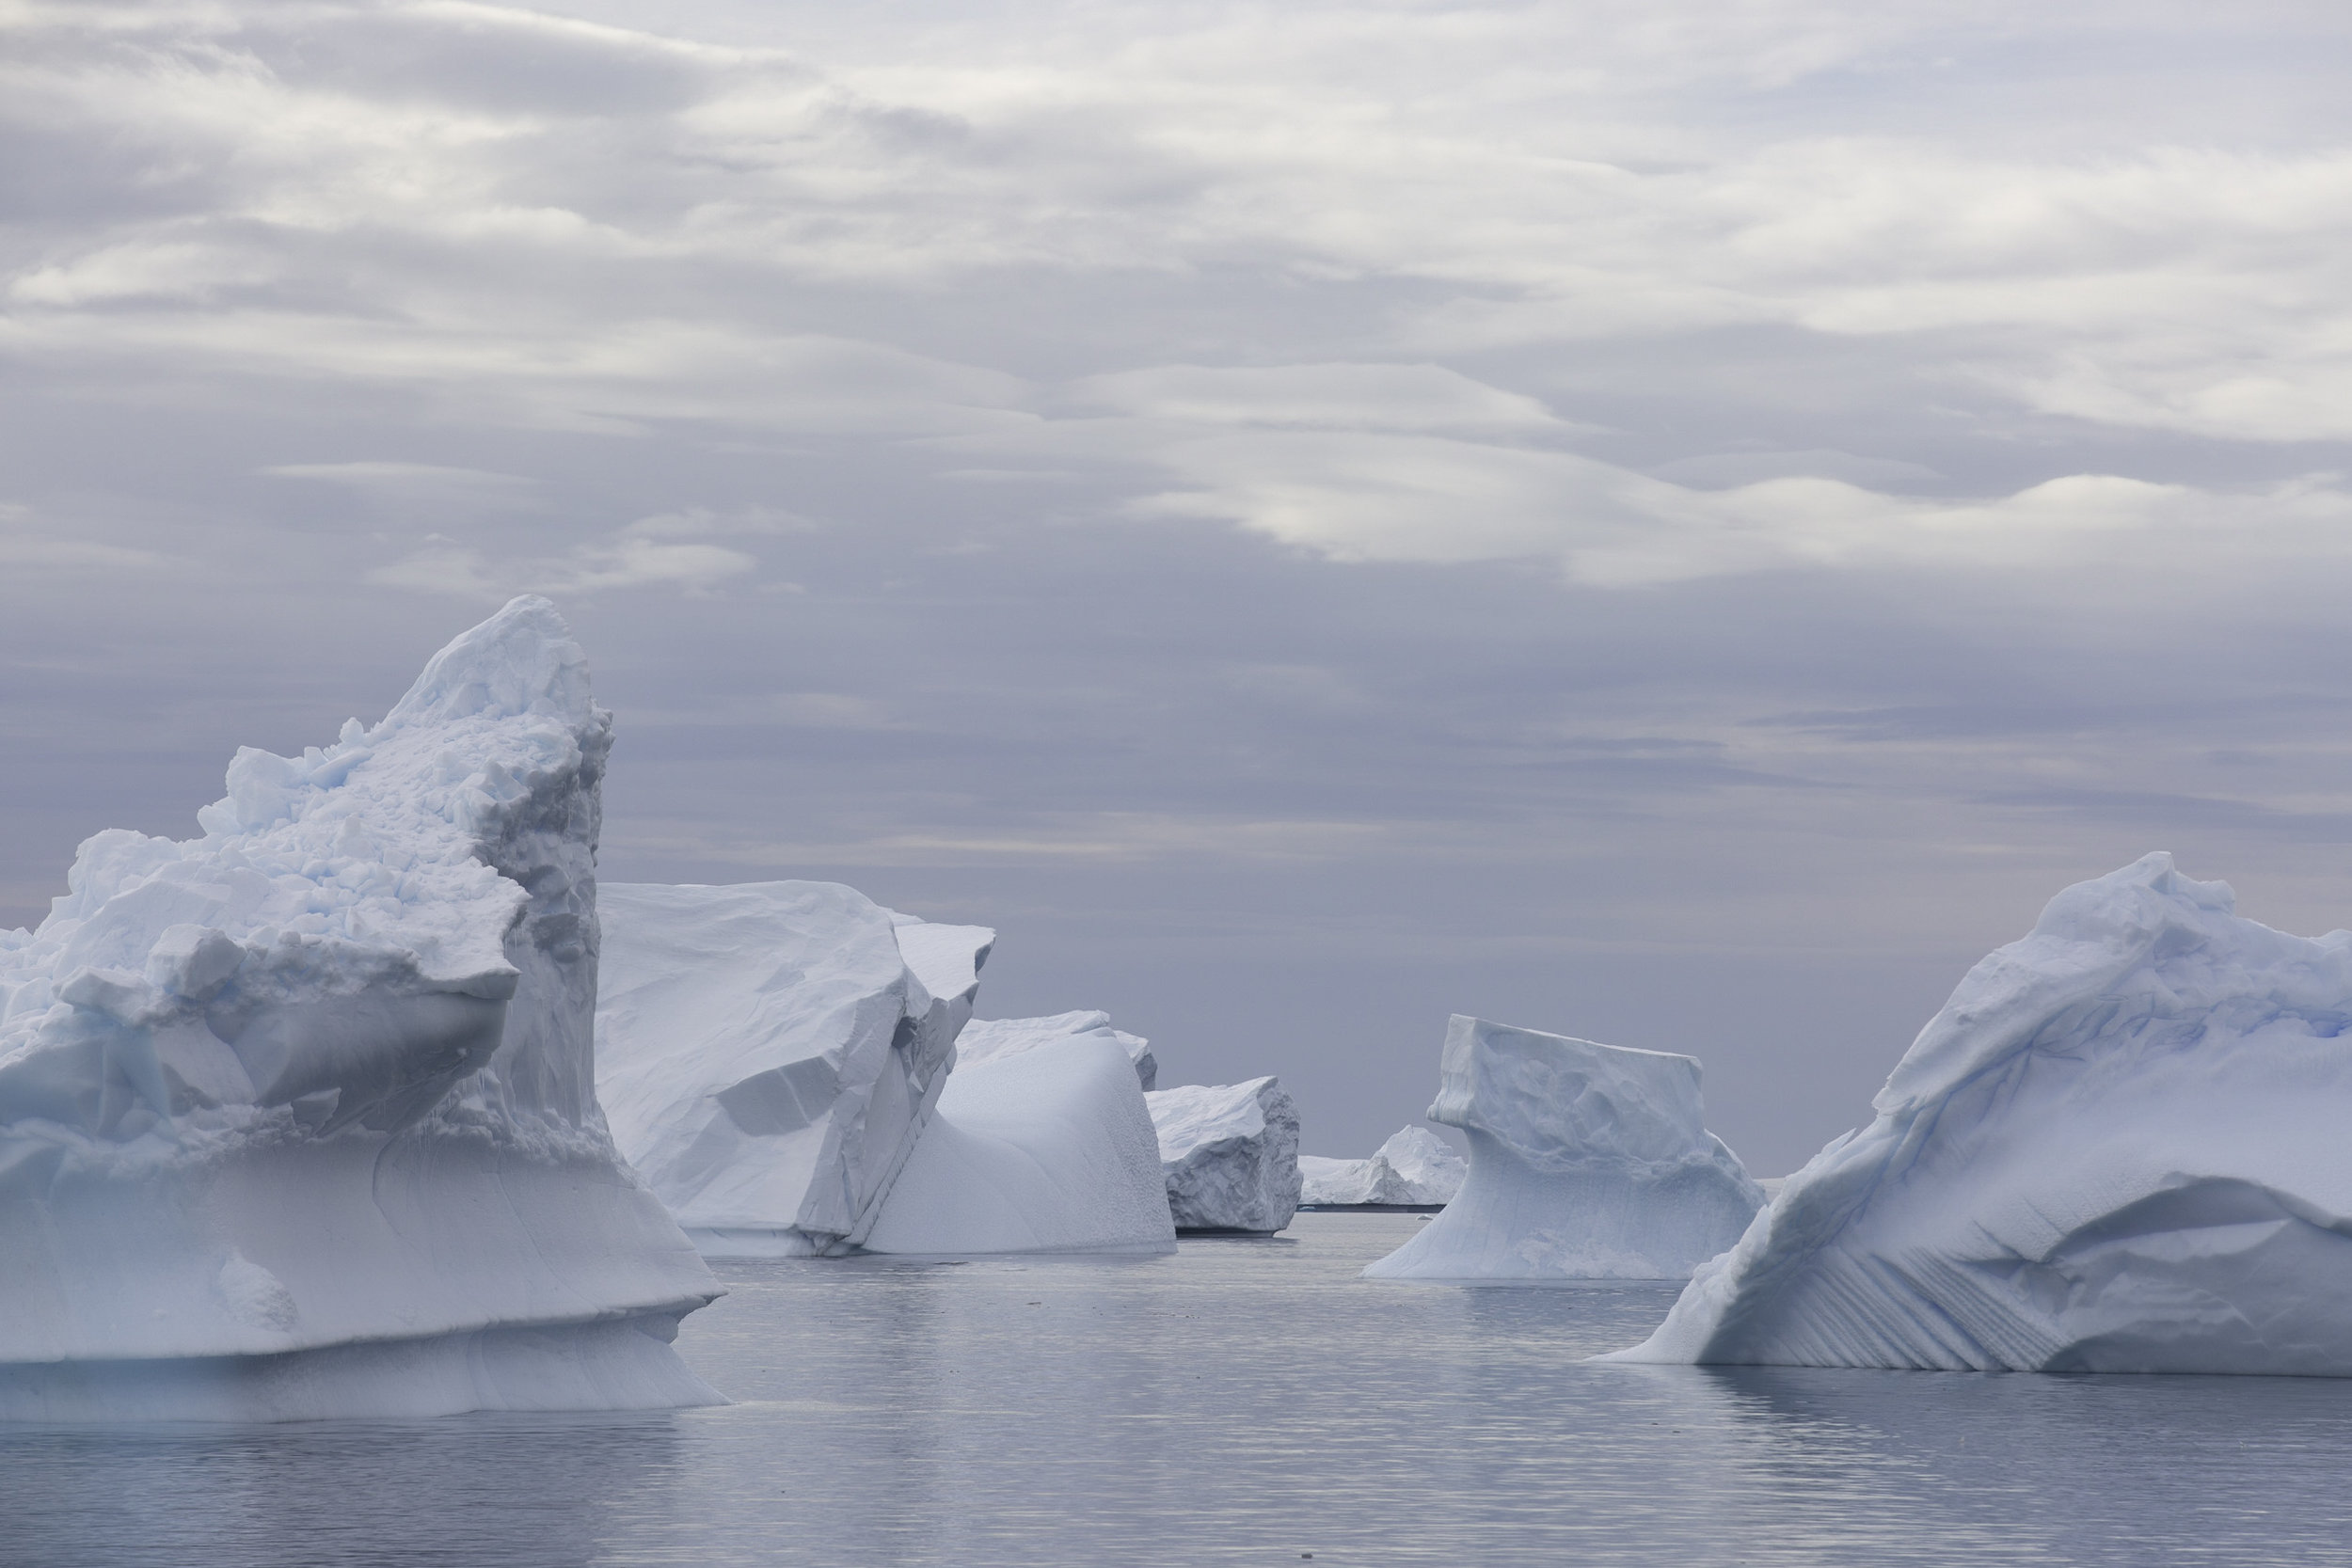 Another iceberg graveyard, all of these are now grounded.